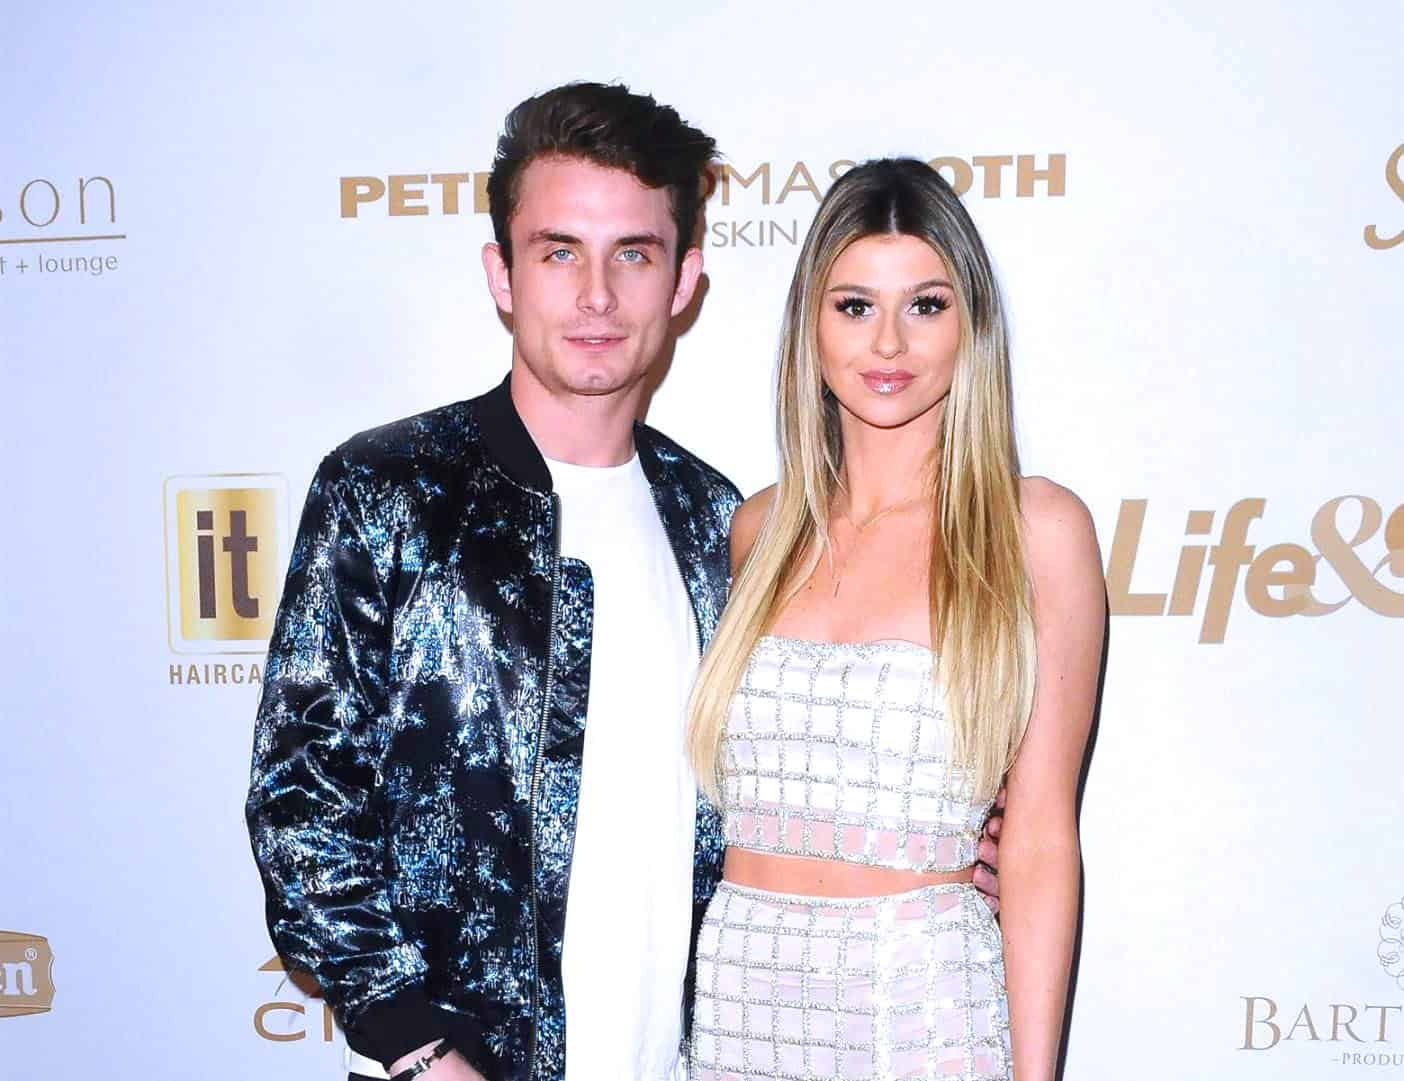 PHOTO: James Kennedy Gets Engaged to Raquel Leviss! Details of the Vanderpump Rules Star's Proposal Revealed Plus Raquel's Engagement Ring